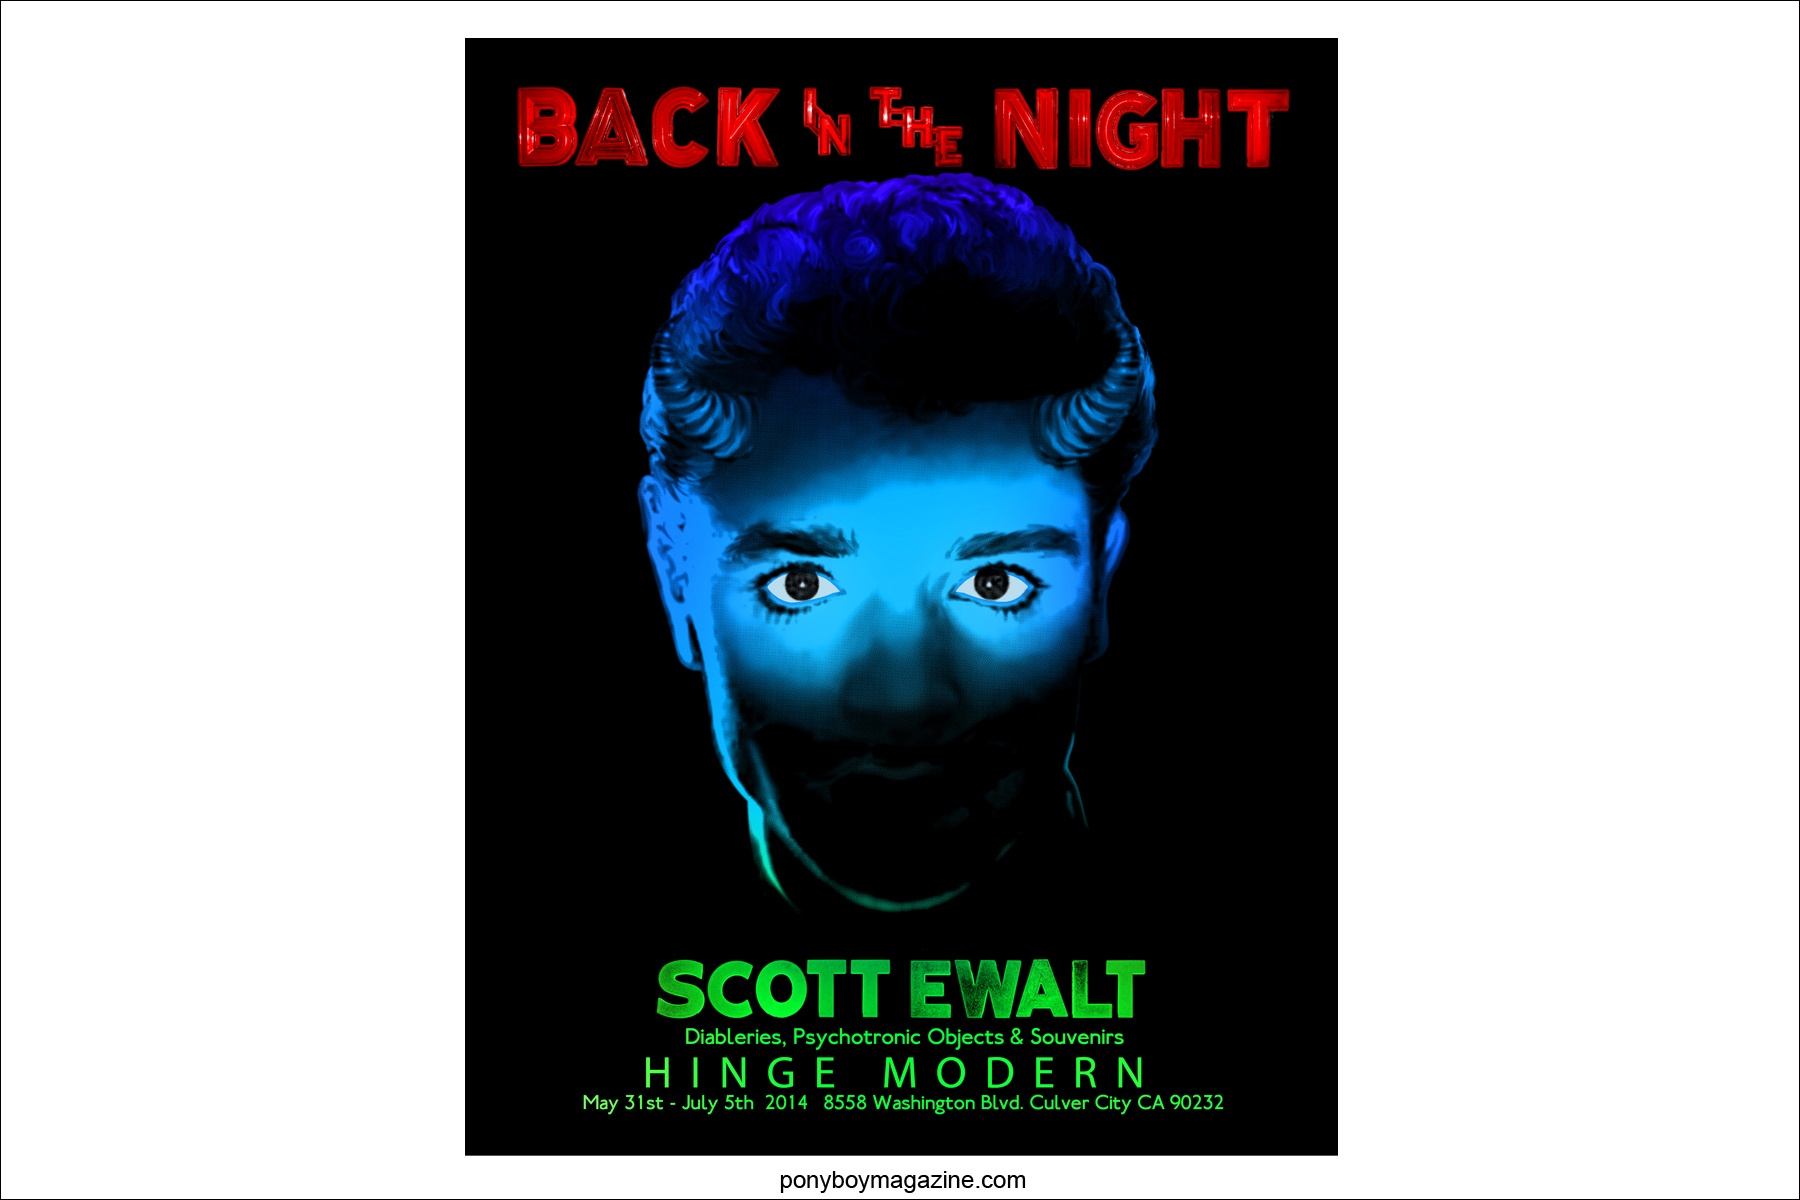 Poster for Scott Ewalt exhibit